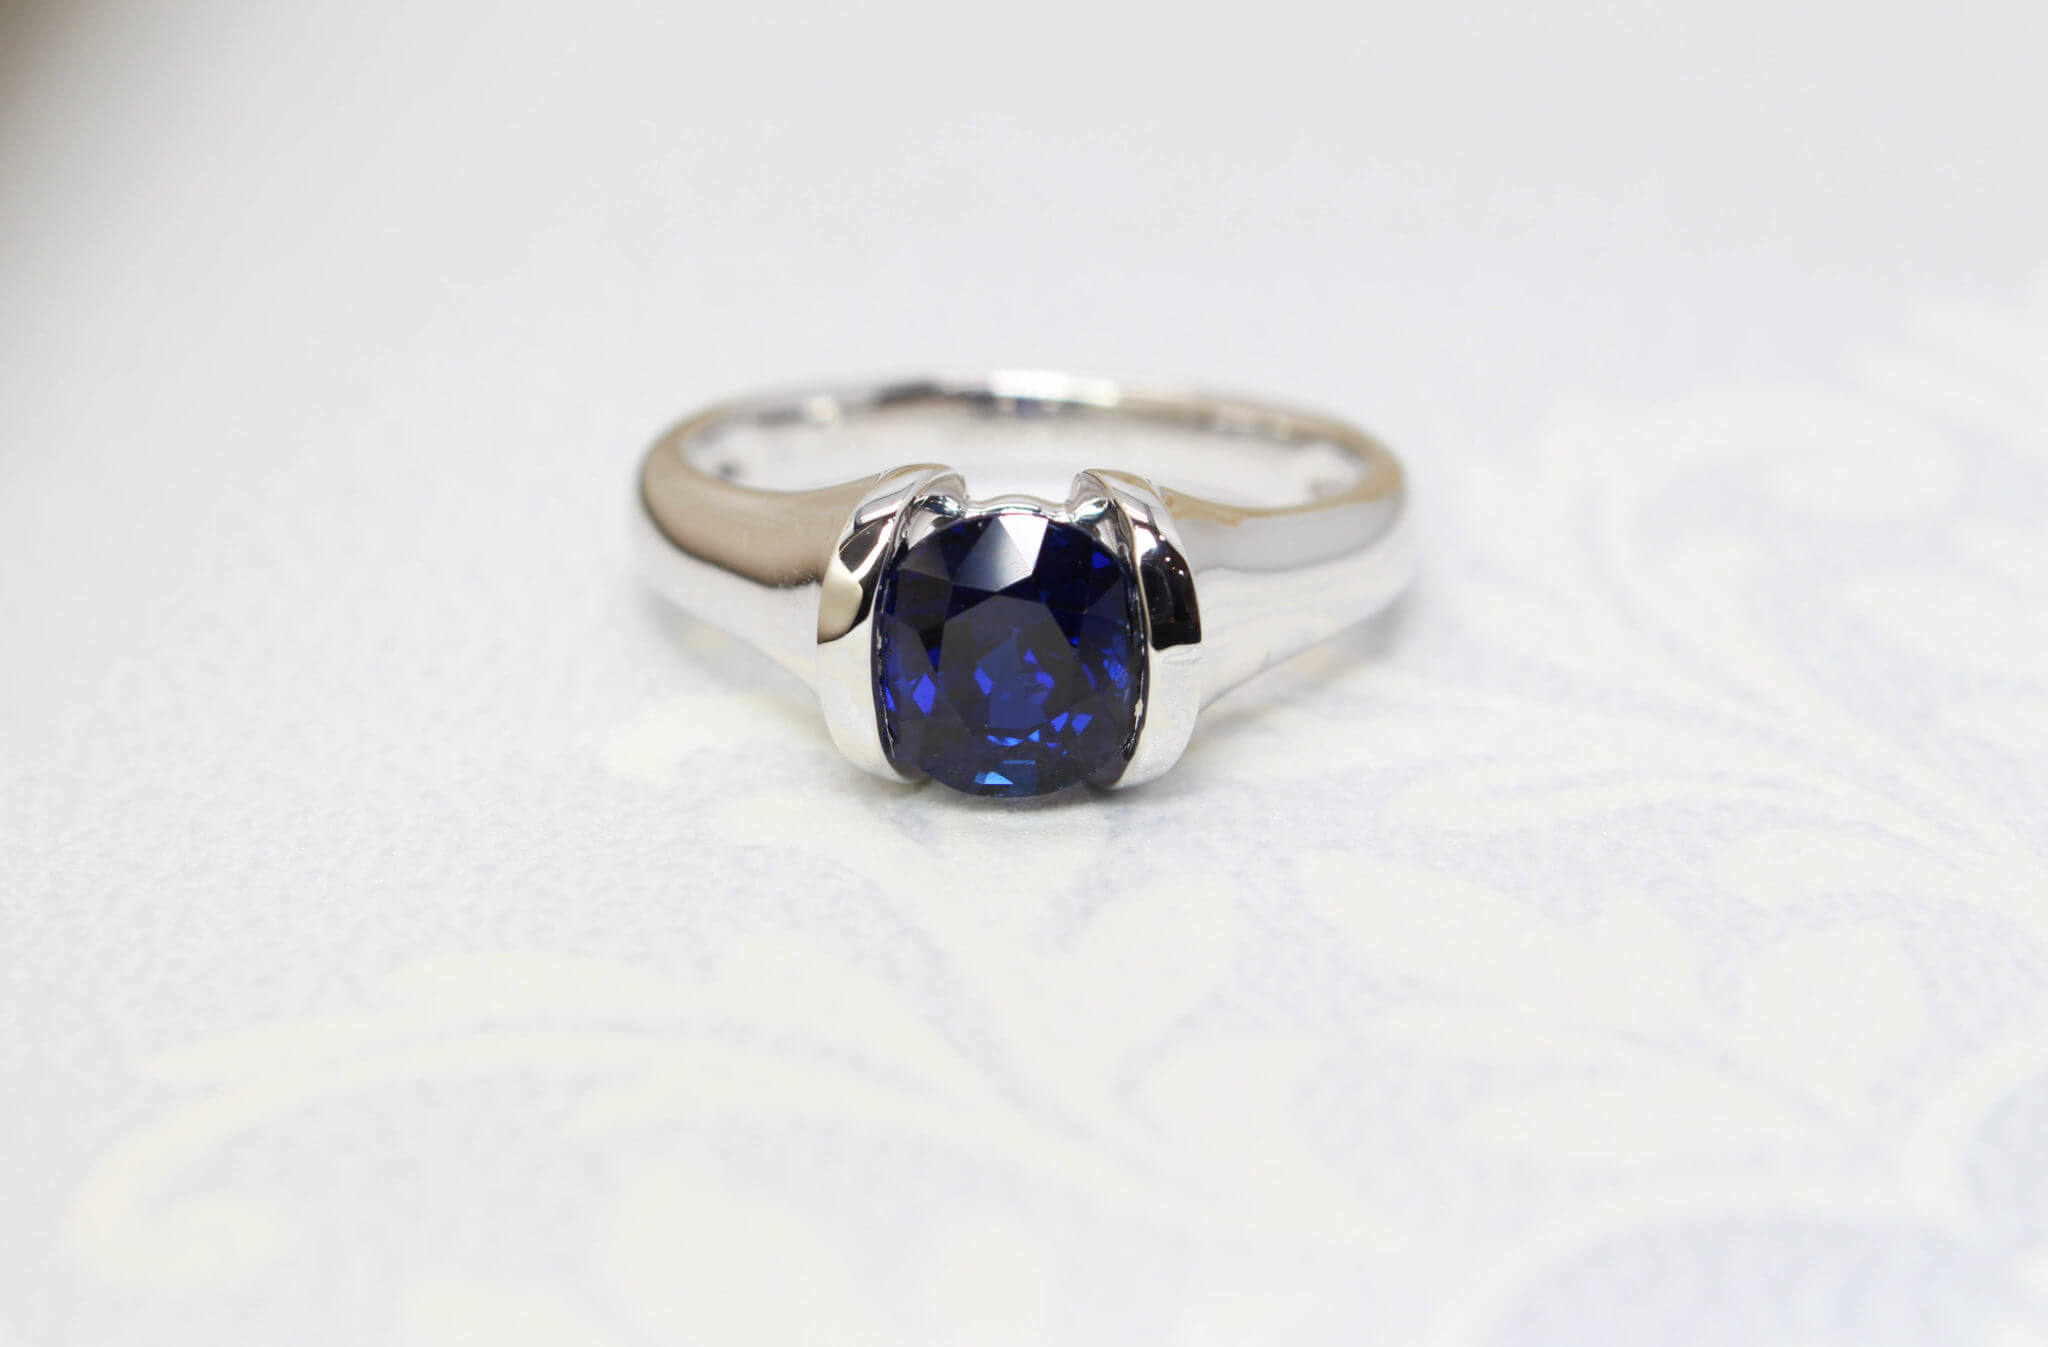 Burma Blue Sapphire Gemstone, rare deep royal blue sapphire gemstone unheated without heat treatment - bespoke Gemstone Jewellery custom set in white gold in half bezel setting | Local Singapore bespoke jewellery in Natural Coloured Gemstone Jewellery